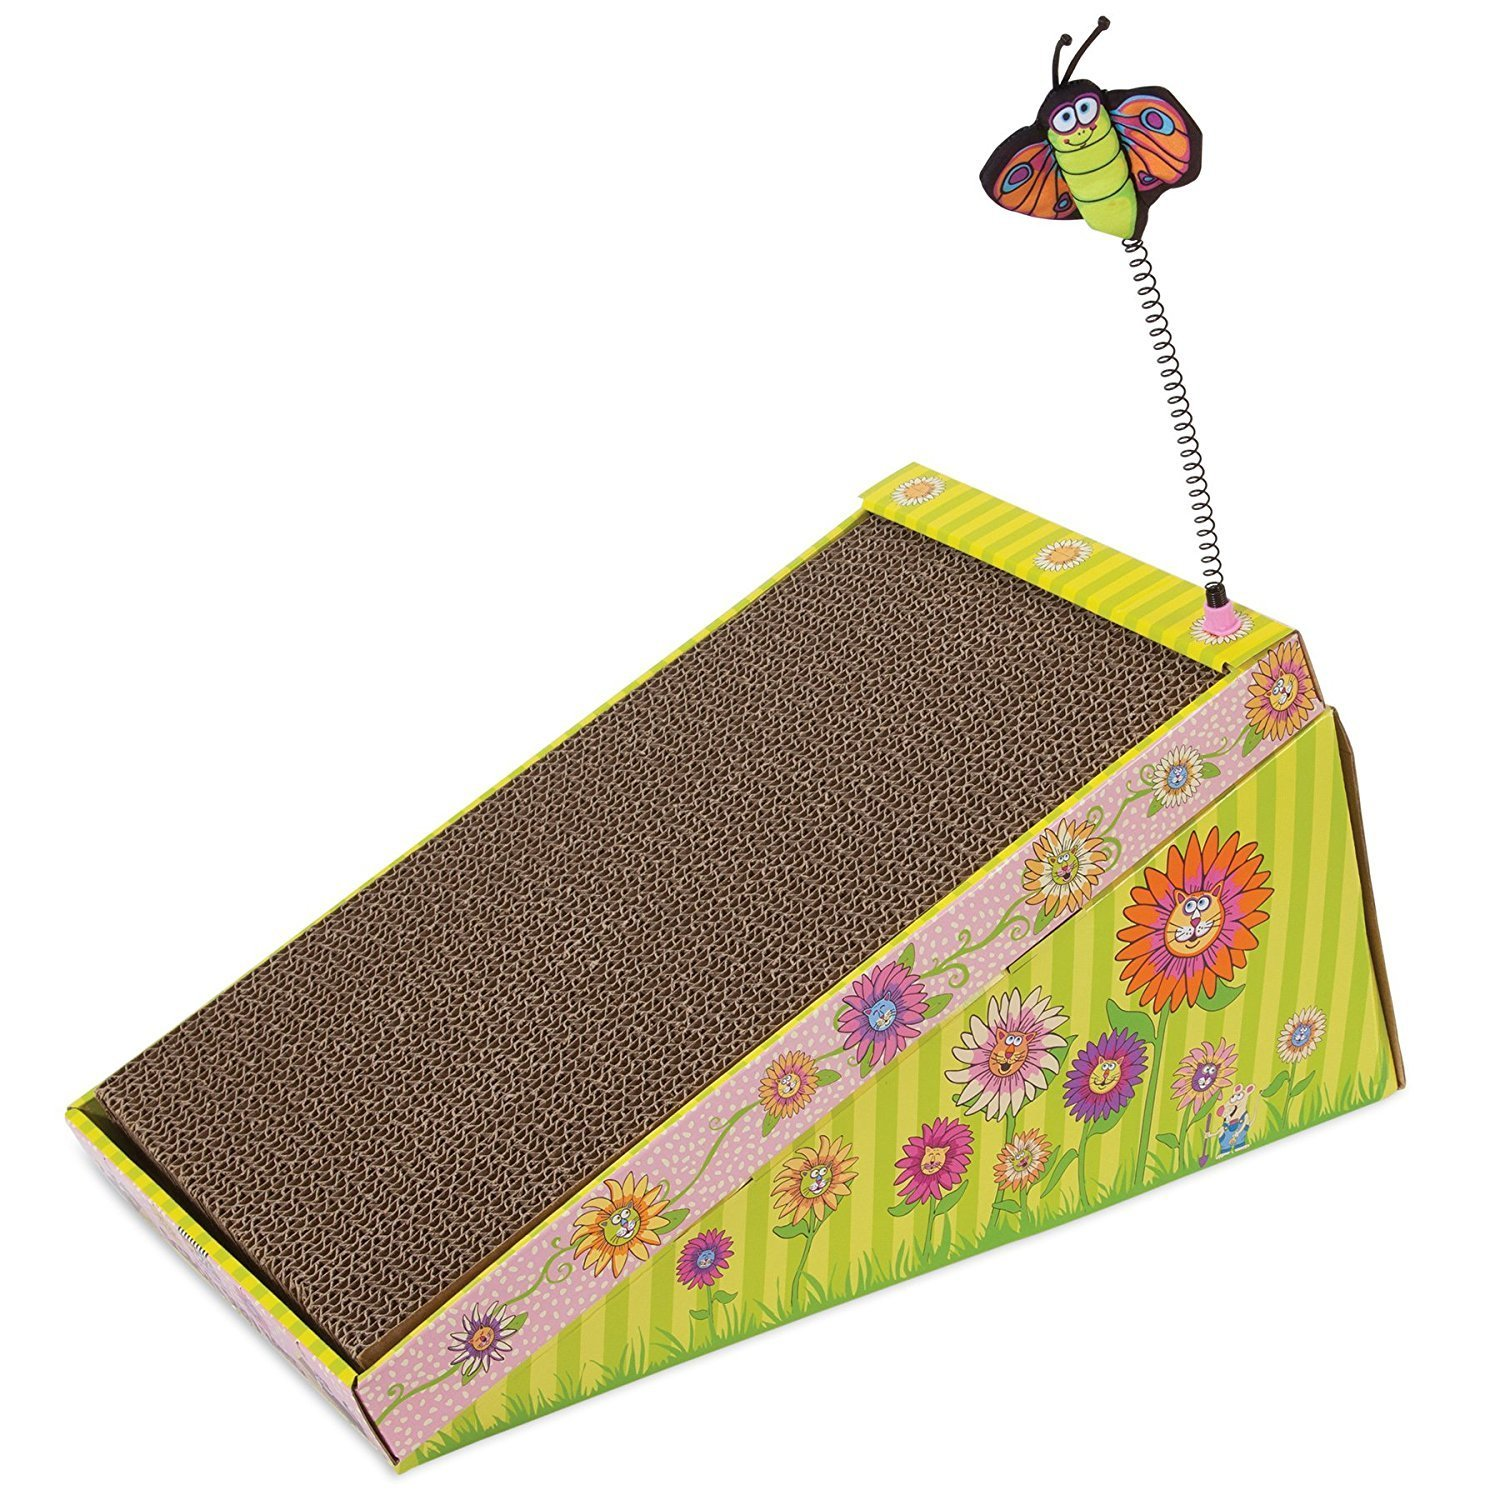 FATCAT Big Mama's Scratch 'n Play Ramp Reversible Cardboard Toy and Catnip Included Bamboo 610403